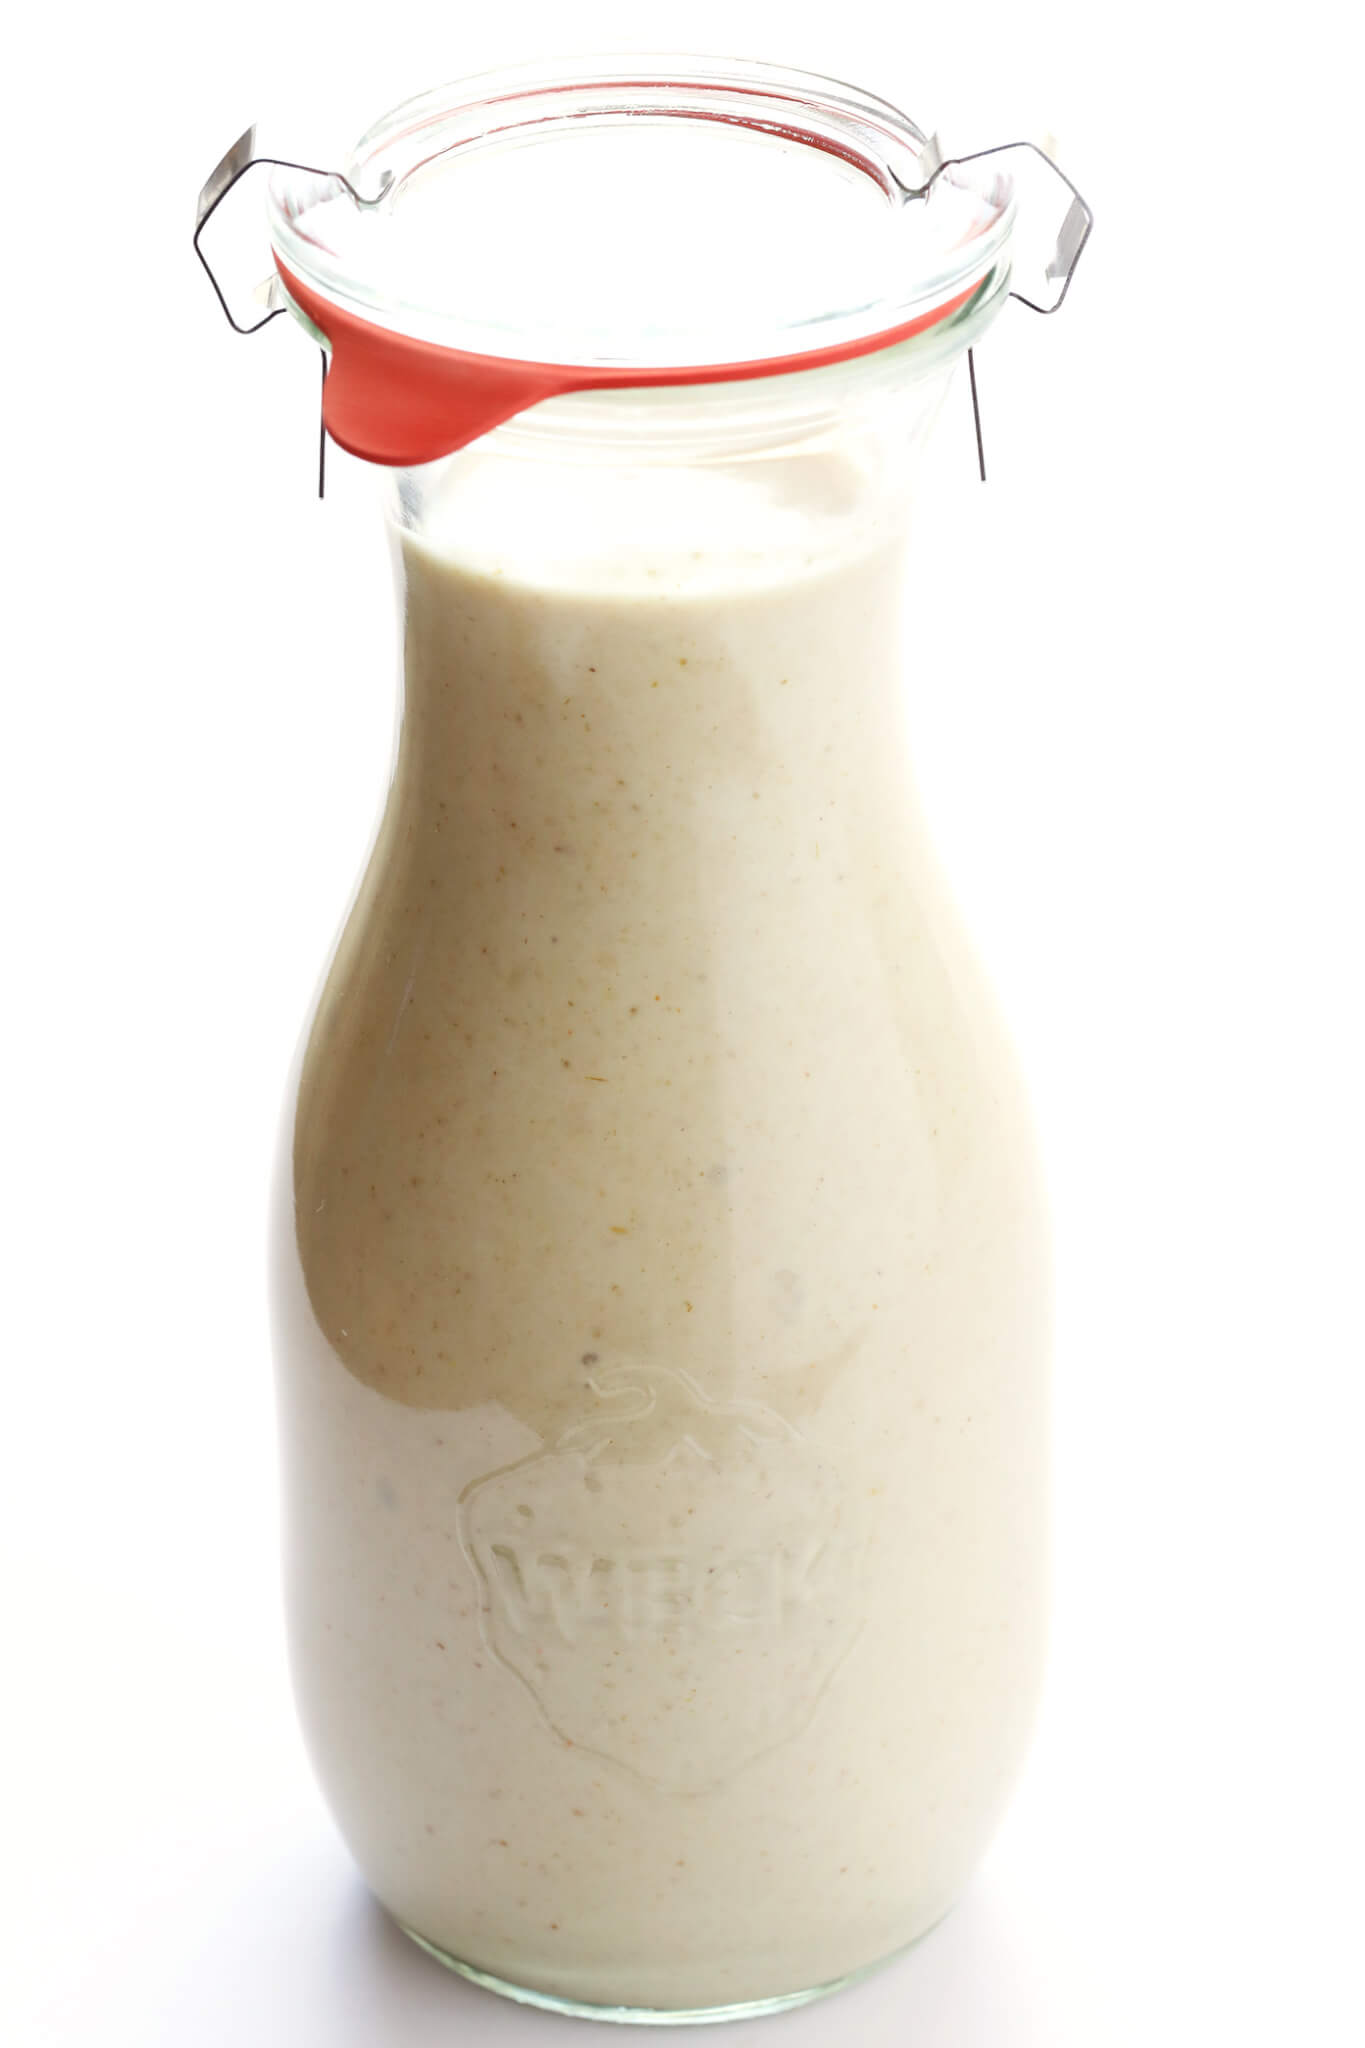 This Dreamy Tahini Dressing is the BEST! It's perfectly creamy and savory and delicious, especially with the zesty kick of lemon and garlic. Perfect drizzled on a salad or roasted vegetables or grilled chicken or more! | gimmesomeoven.com (Vegetarian / Gluten-Free)